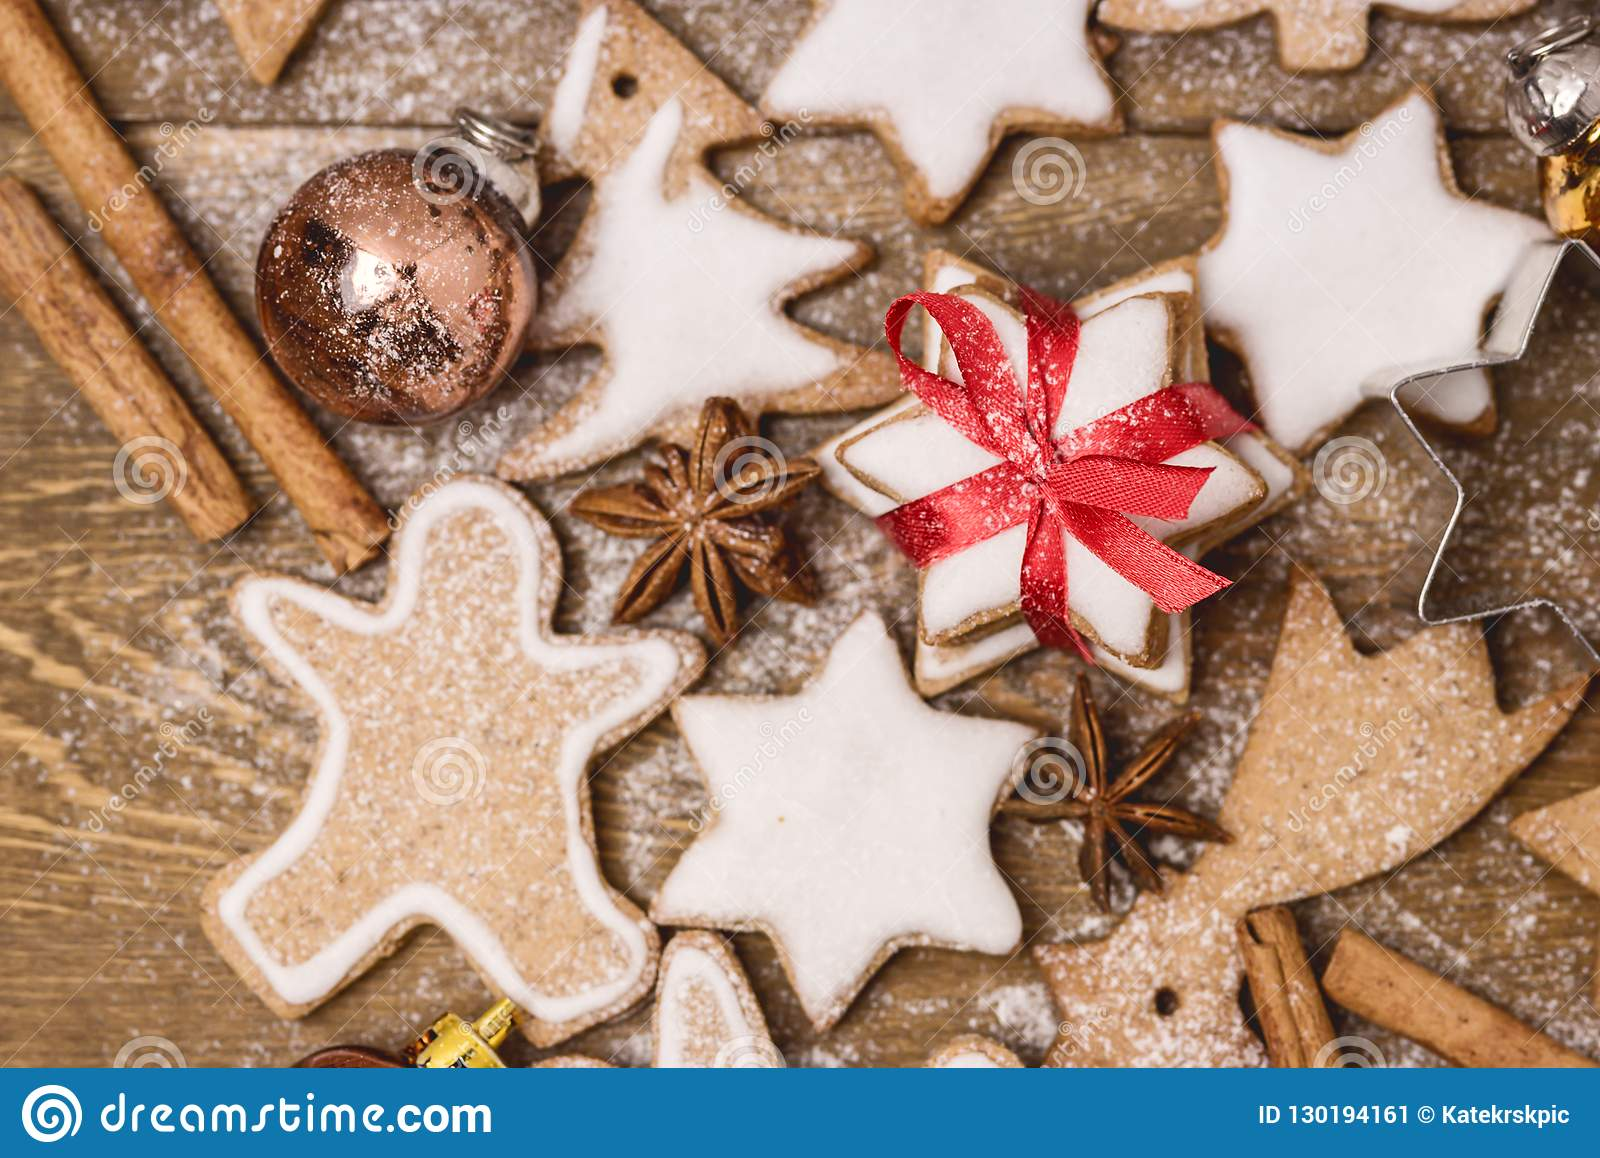 Christmas Homemade Gingerbread Cookies on Wooden Background Christmas Background Christmas Sweet Food Gingerbread Man Horizontal